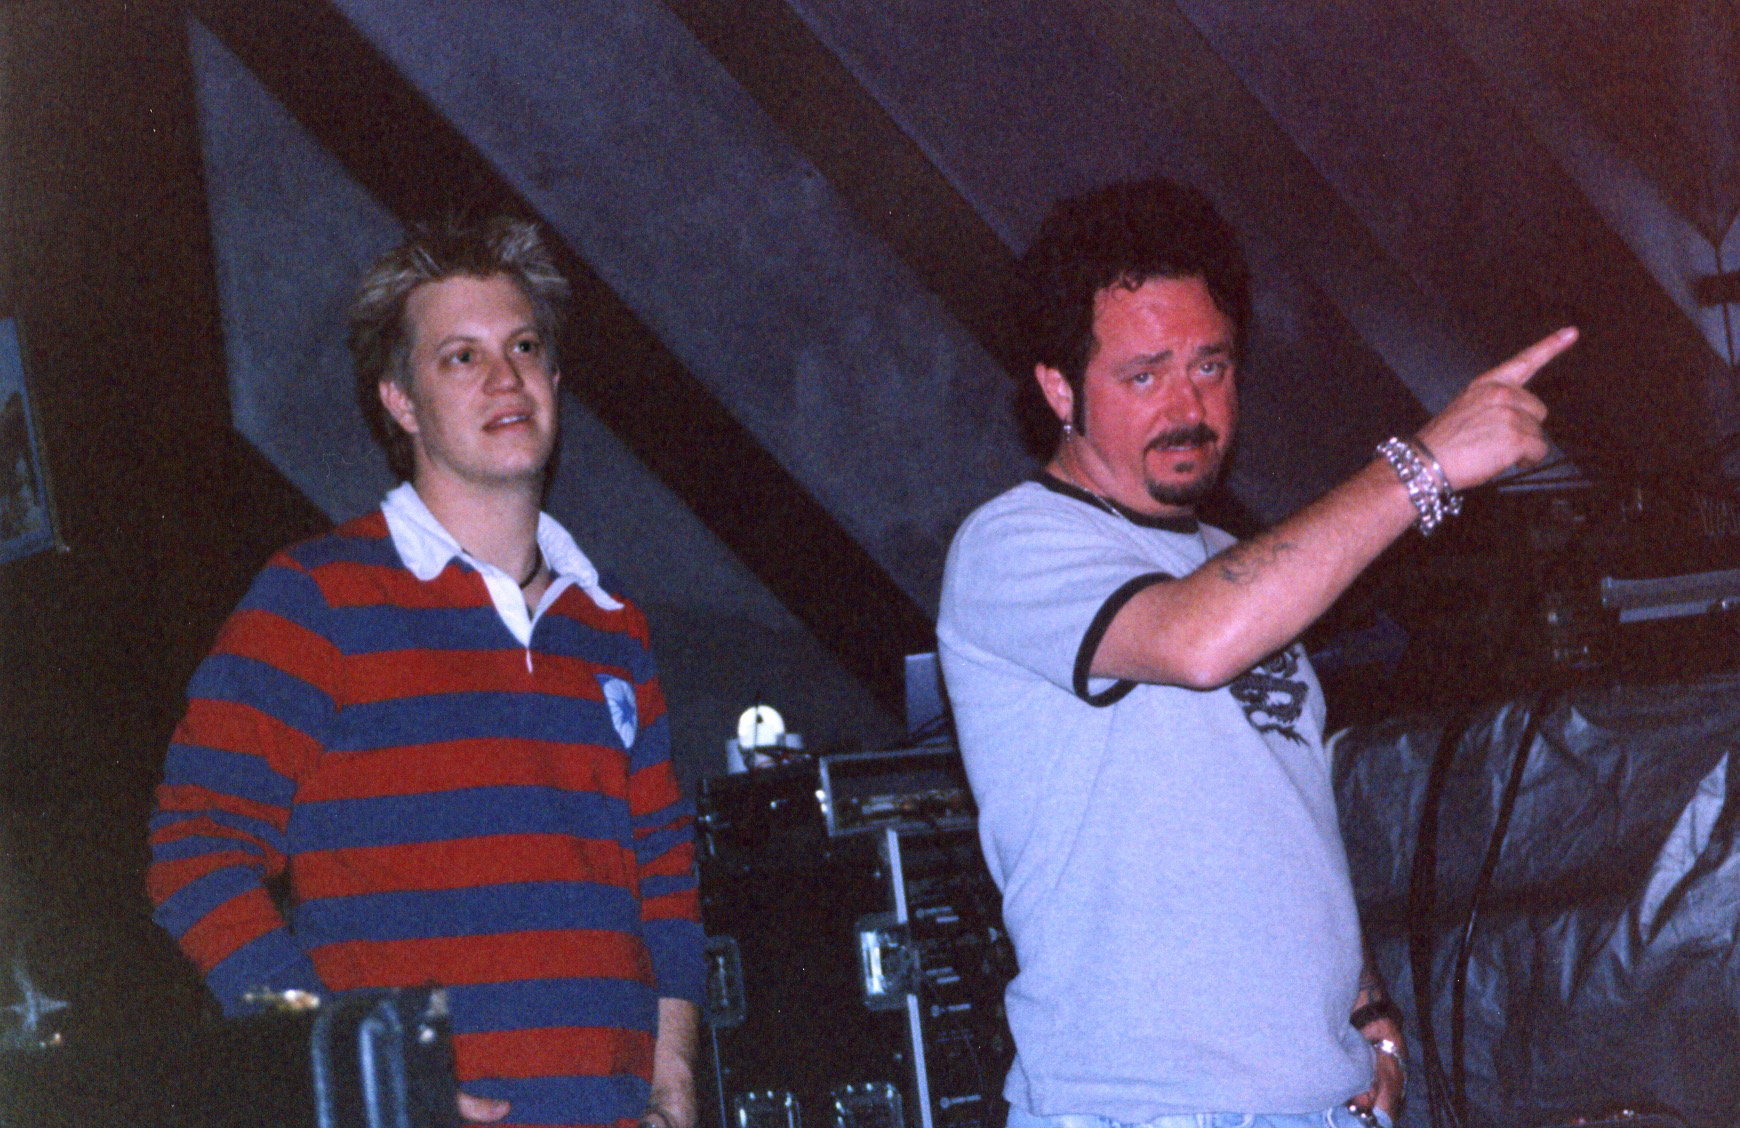 w/ Steve Lukather; Doves of Fire tour, Japan 2001